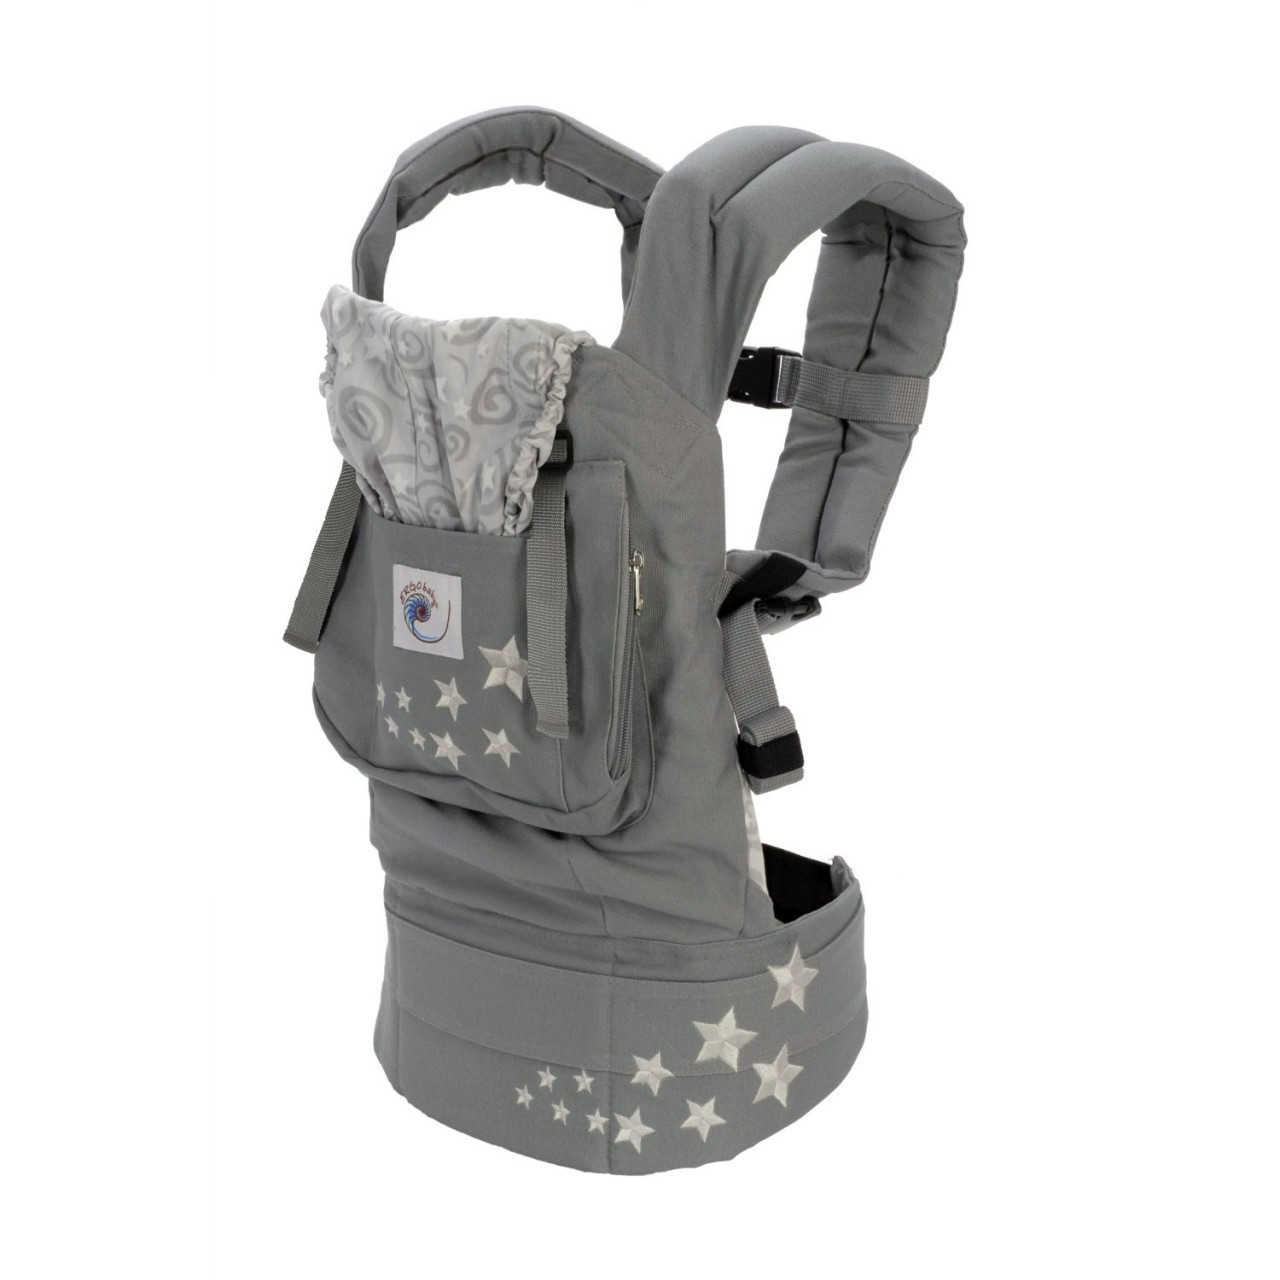 03efda19300 ... ERGObaby Original Baby Carrier -Gray. Image 1